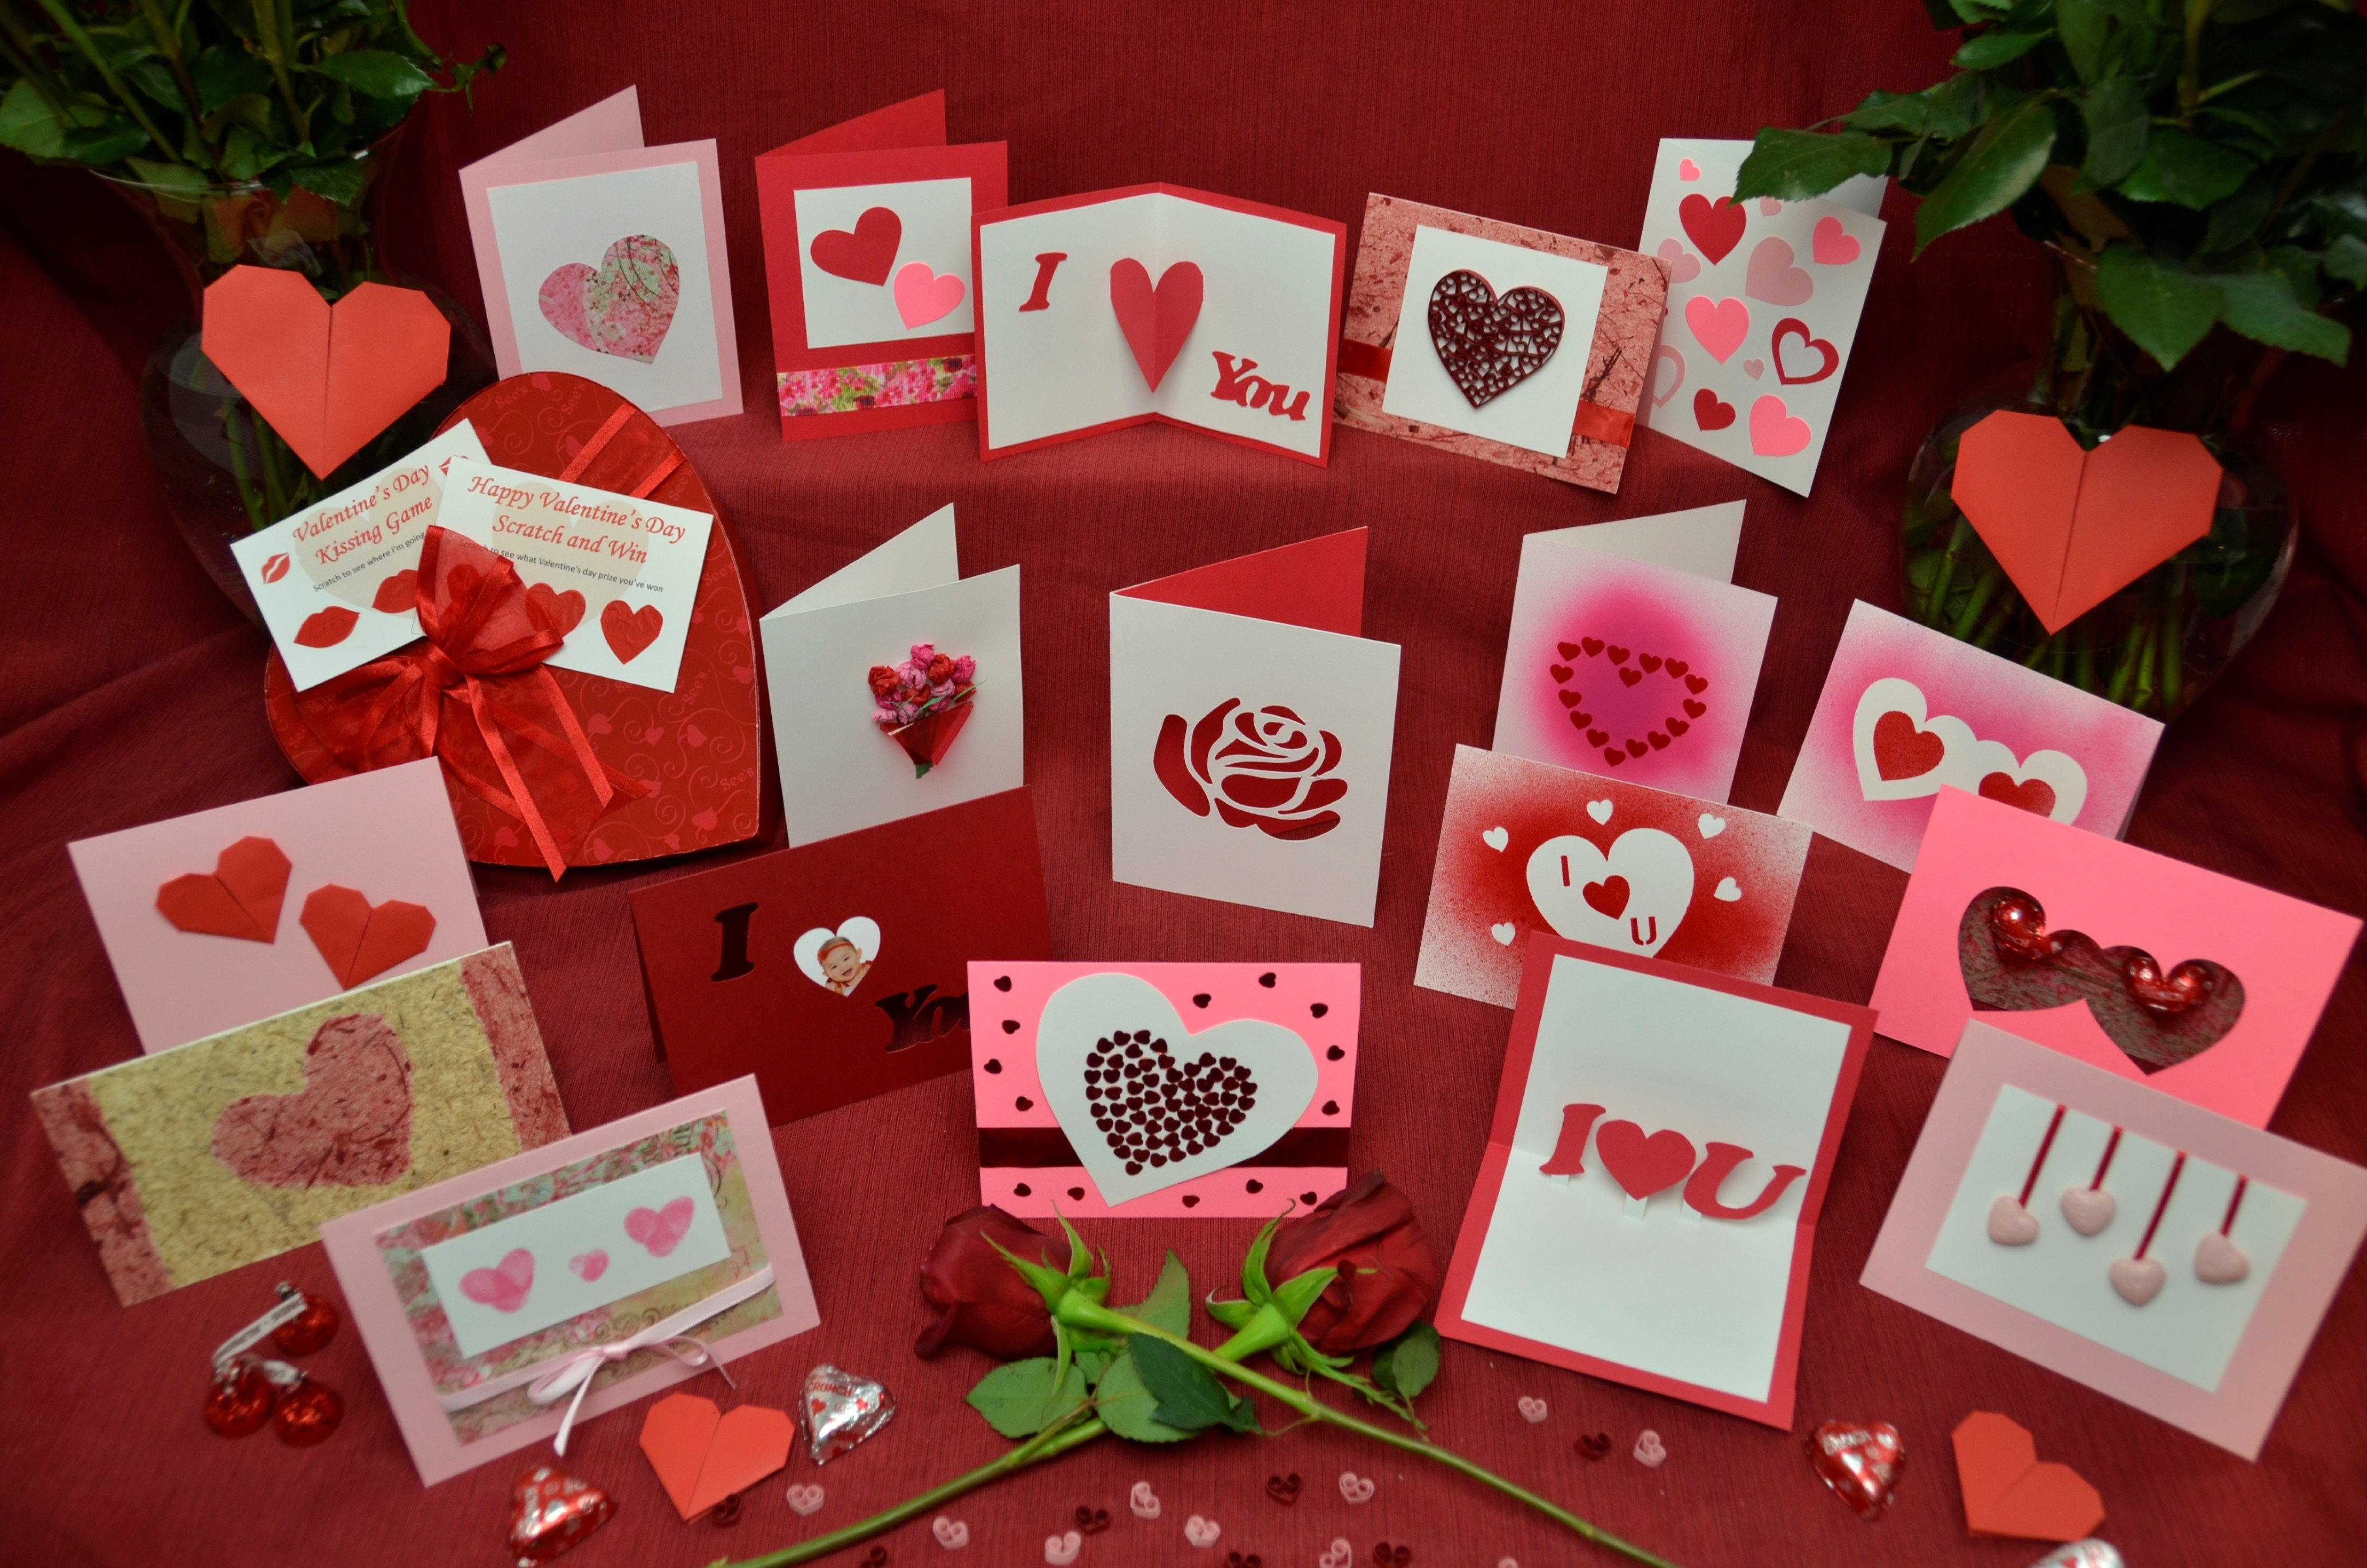 10 Awesome Valentines Day Ideas For Her Creative top 10 ideas for valentines day cards creative pop up cards 10 2020